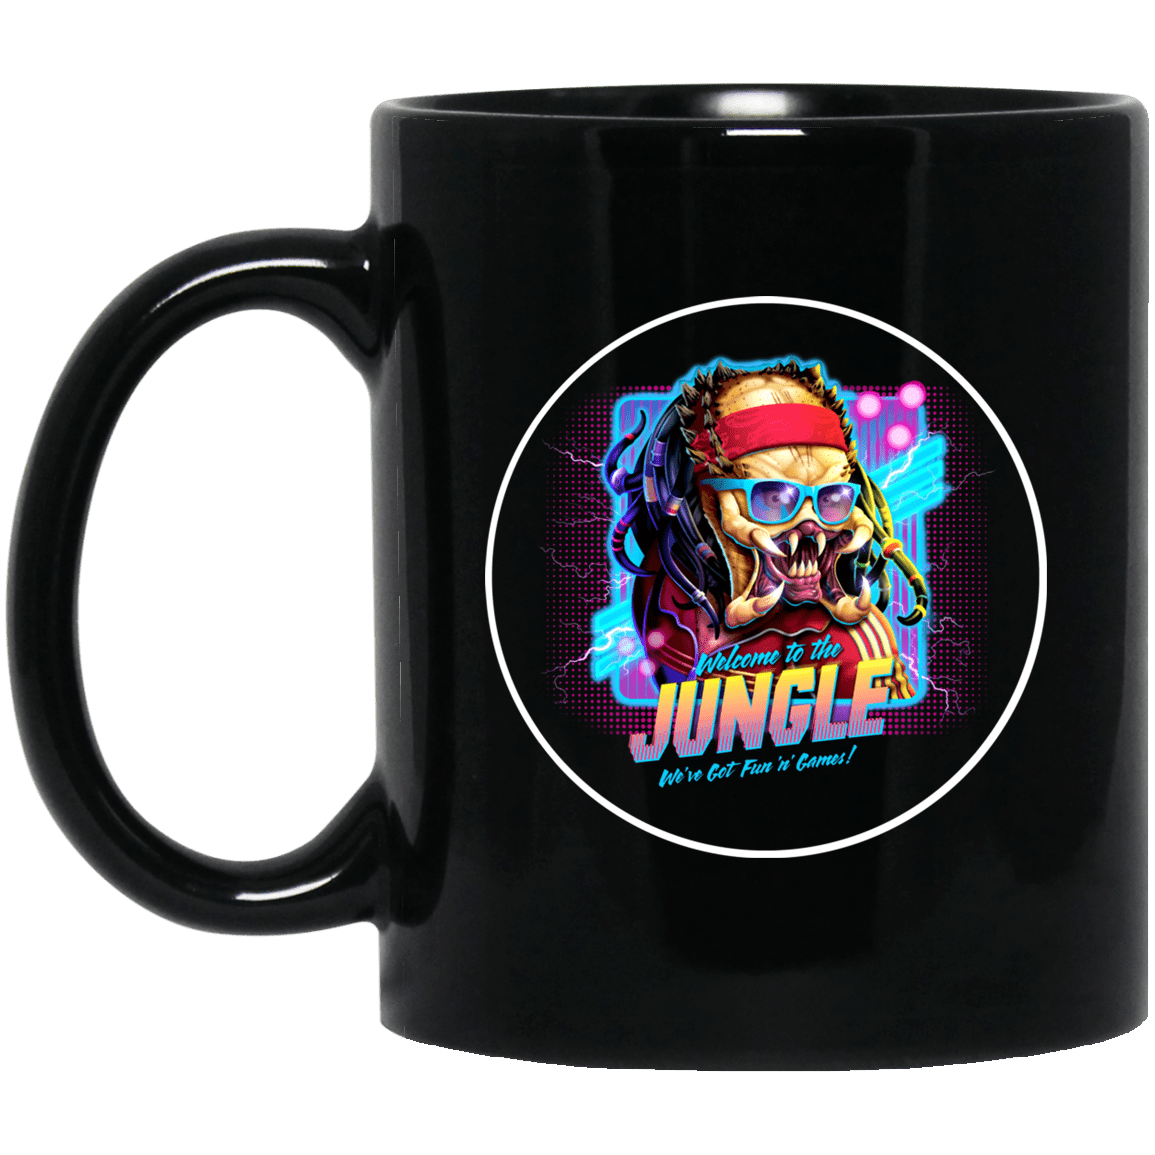 Welcome To The Jungle We've Got Fun'n' Games Mug 1065-10181-89726621-49307 - Tee Ript